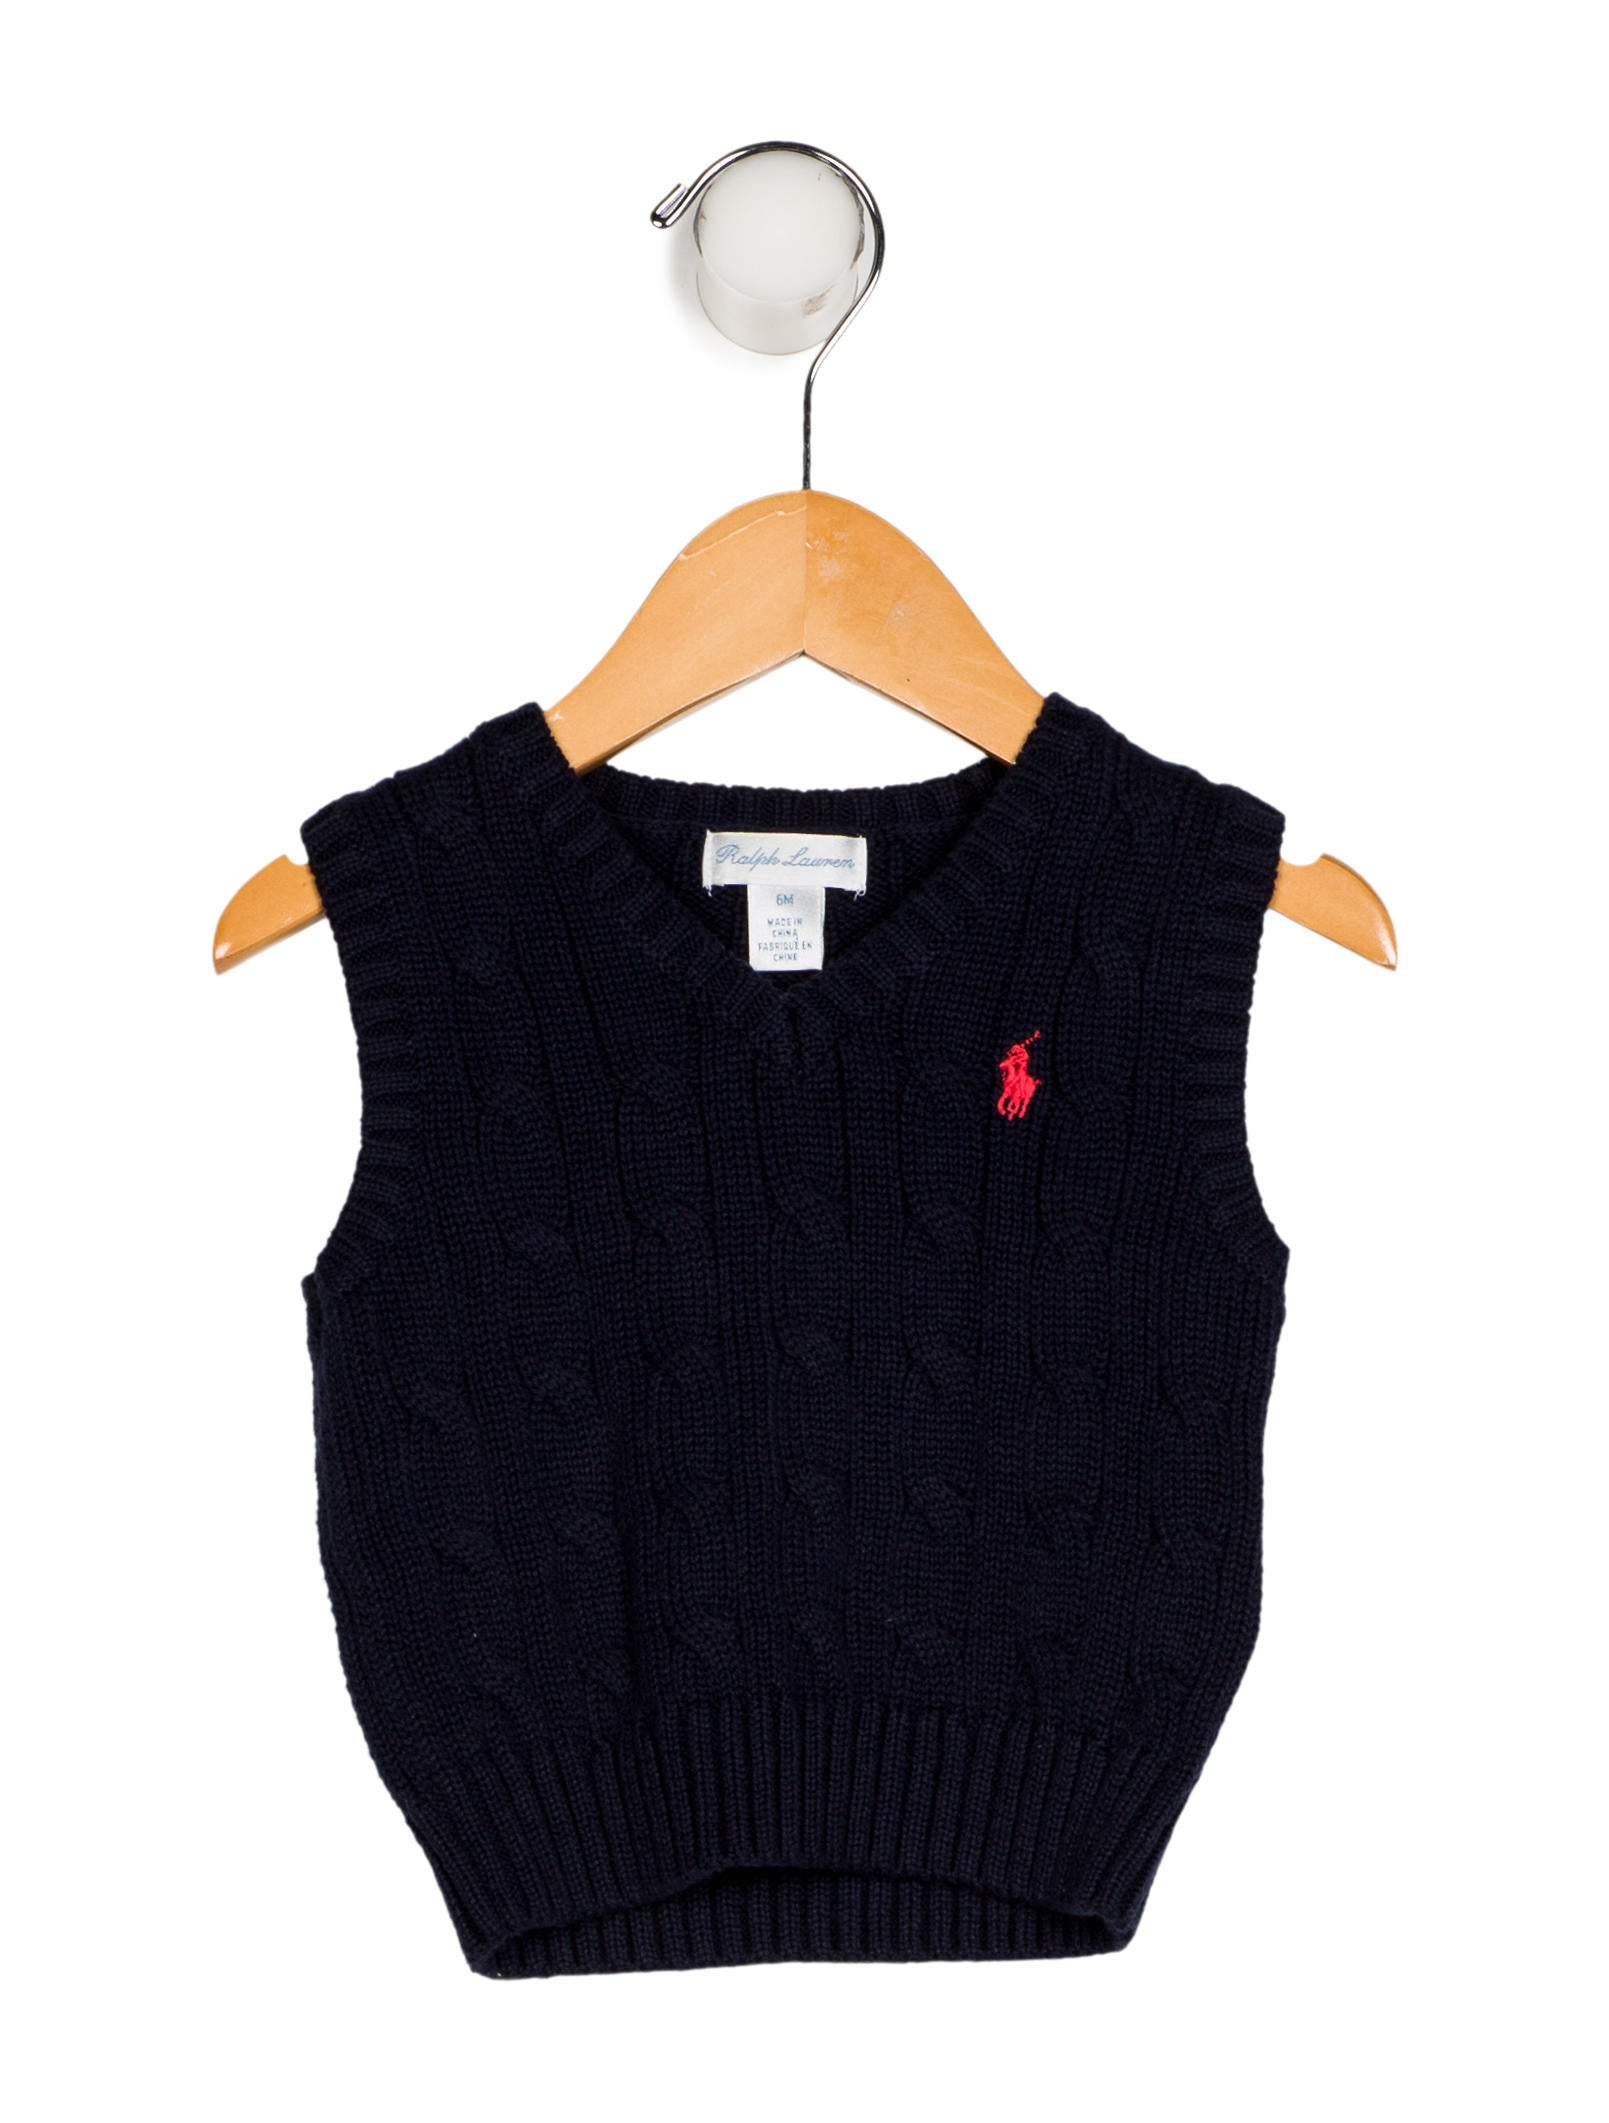 96a1dc884bfd Ralph Lauren Boys  Cable Knit Sweater Vest w  Tags - Boys - WYG30518 ...